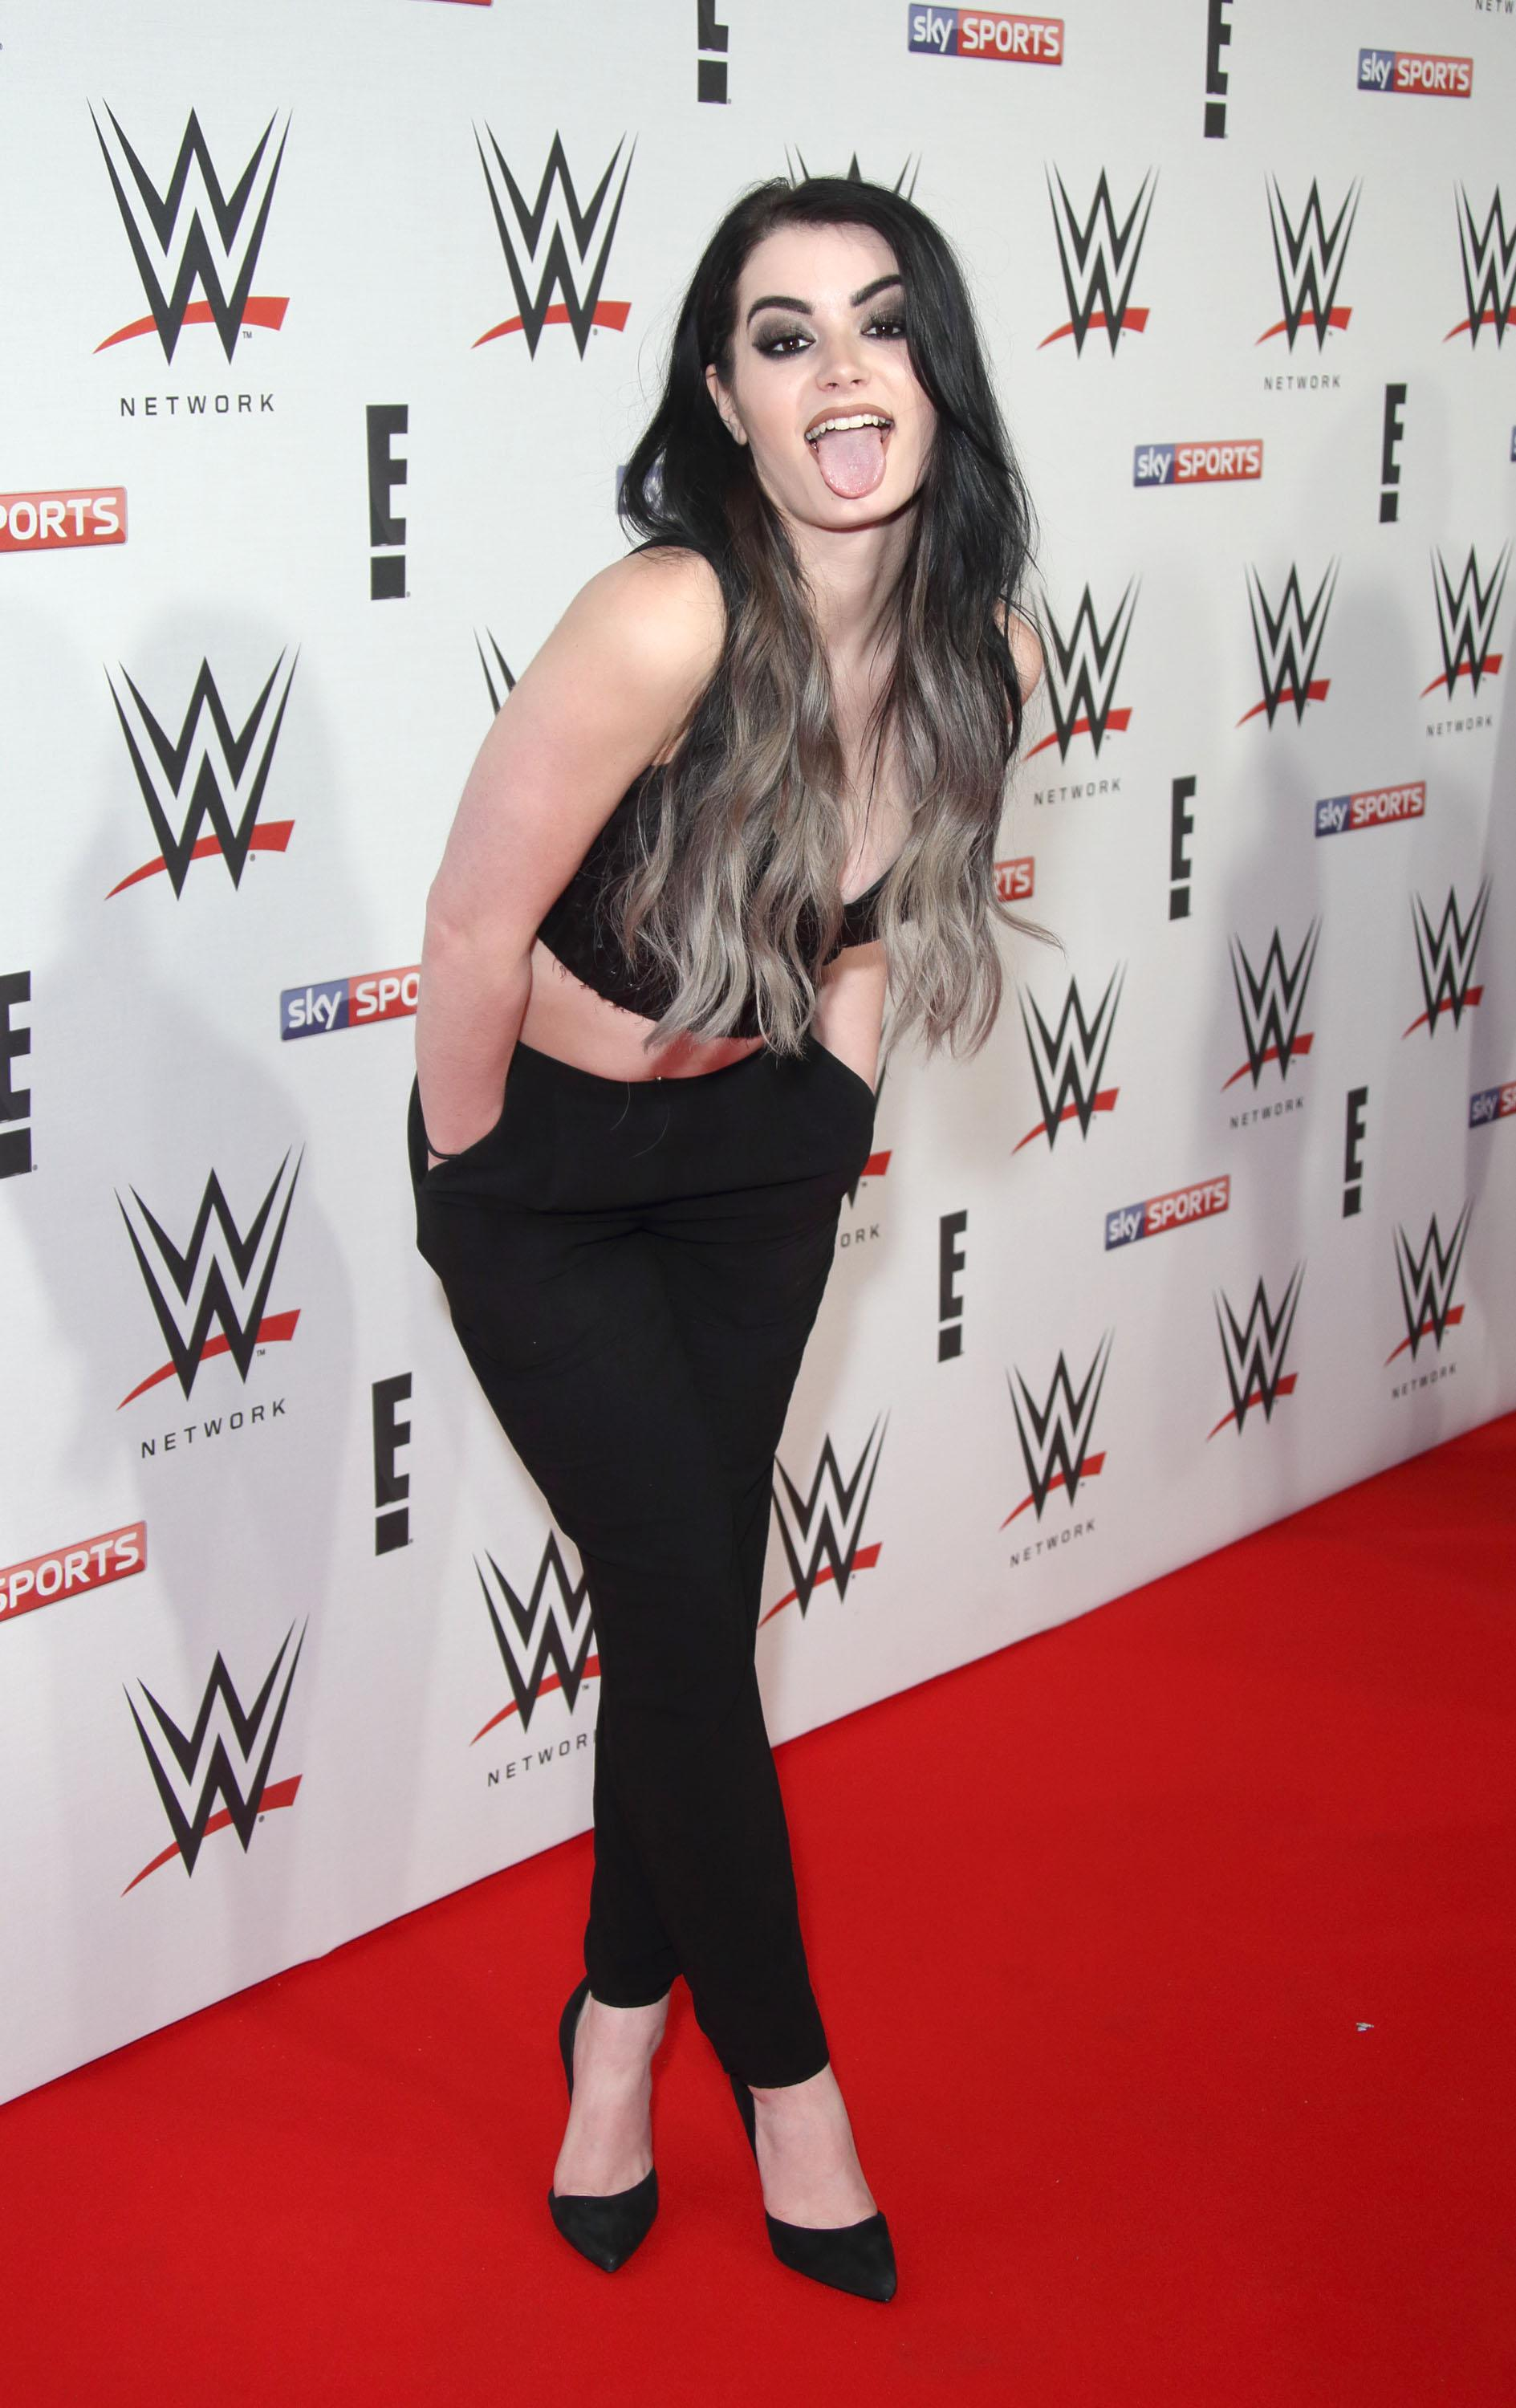 Wwes Paige Leaked photo 22